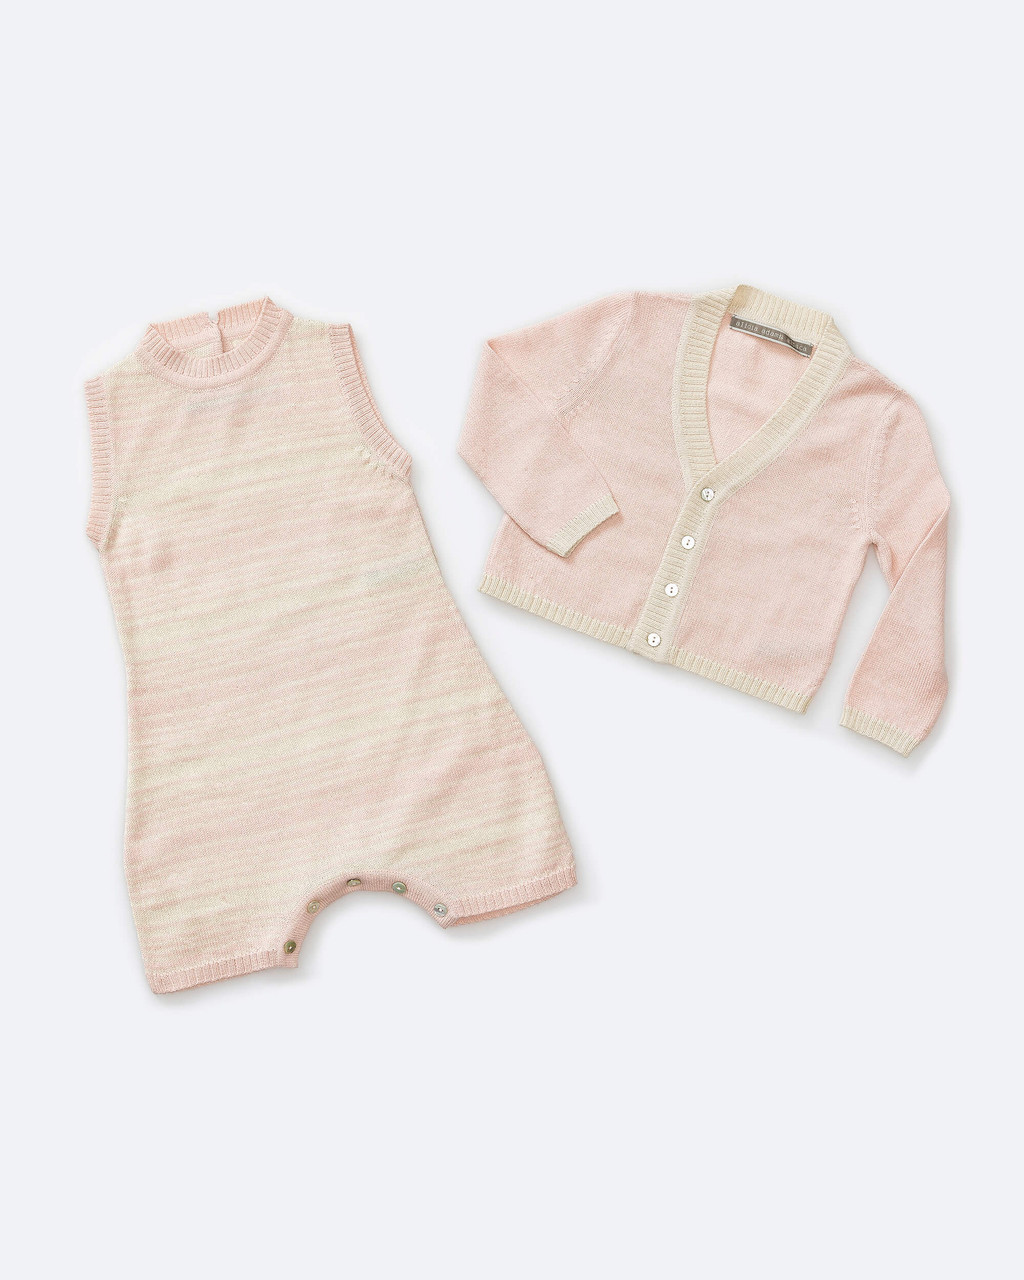 Alicia Adams Alpaca Samie Onesie and Cardigan set, ultimate gift for baby and mommy, baby alpaca onesie, light pink and ivory baby alpaca clothing set